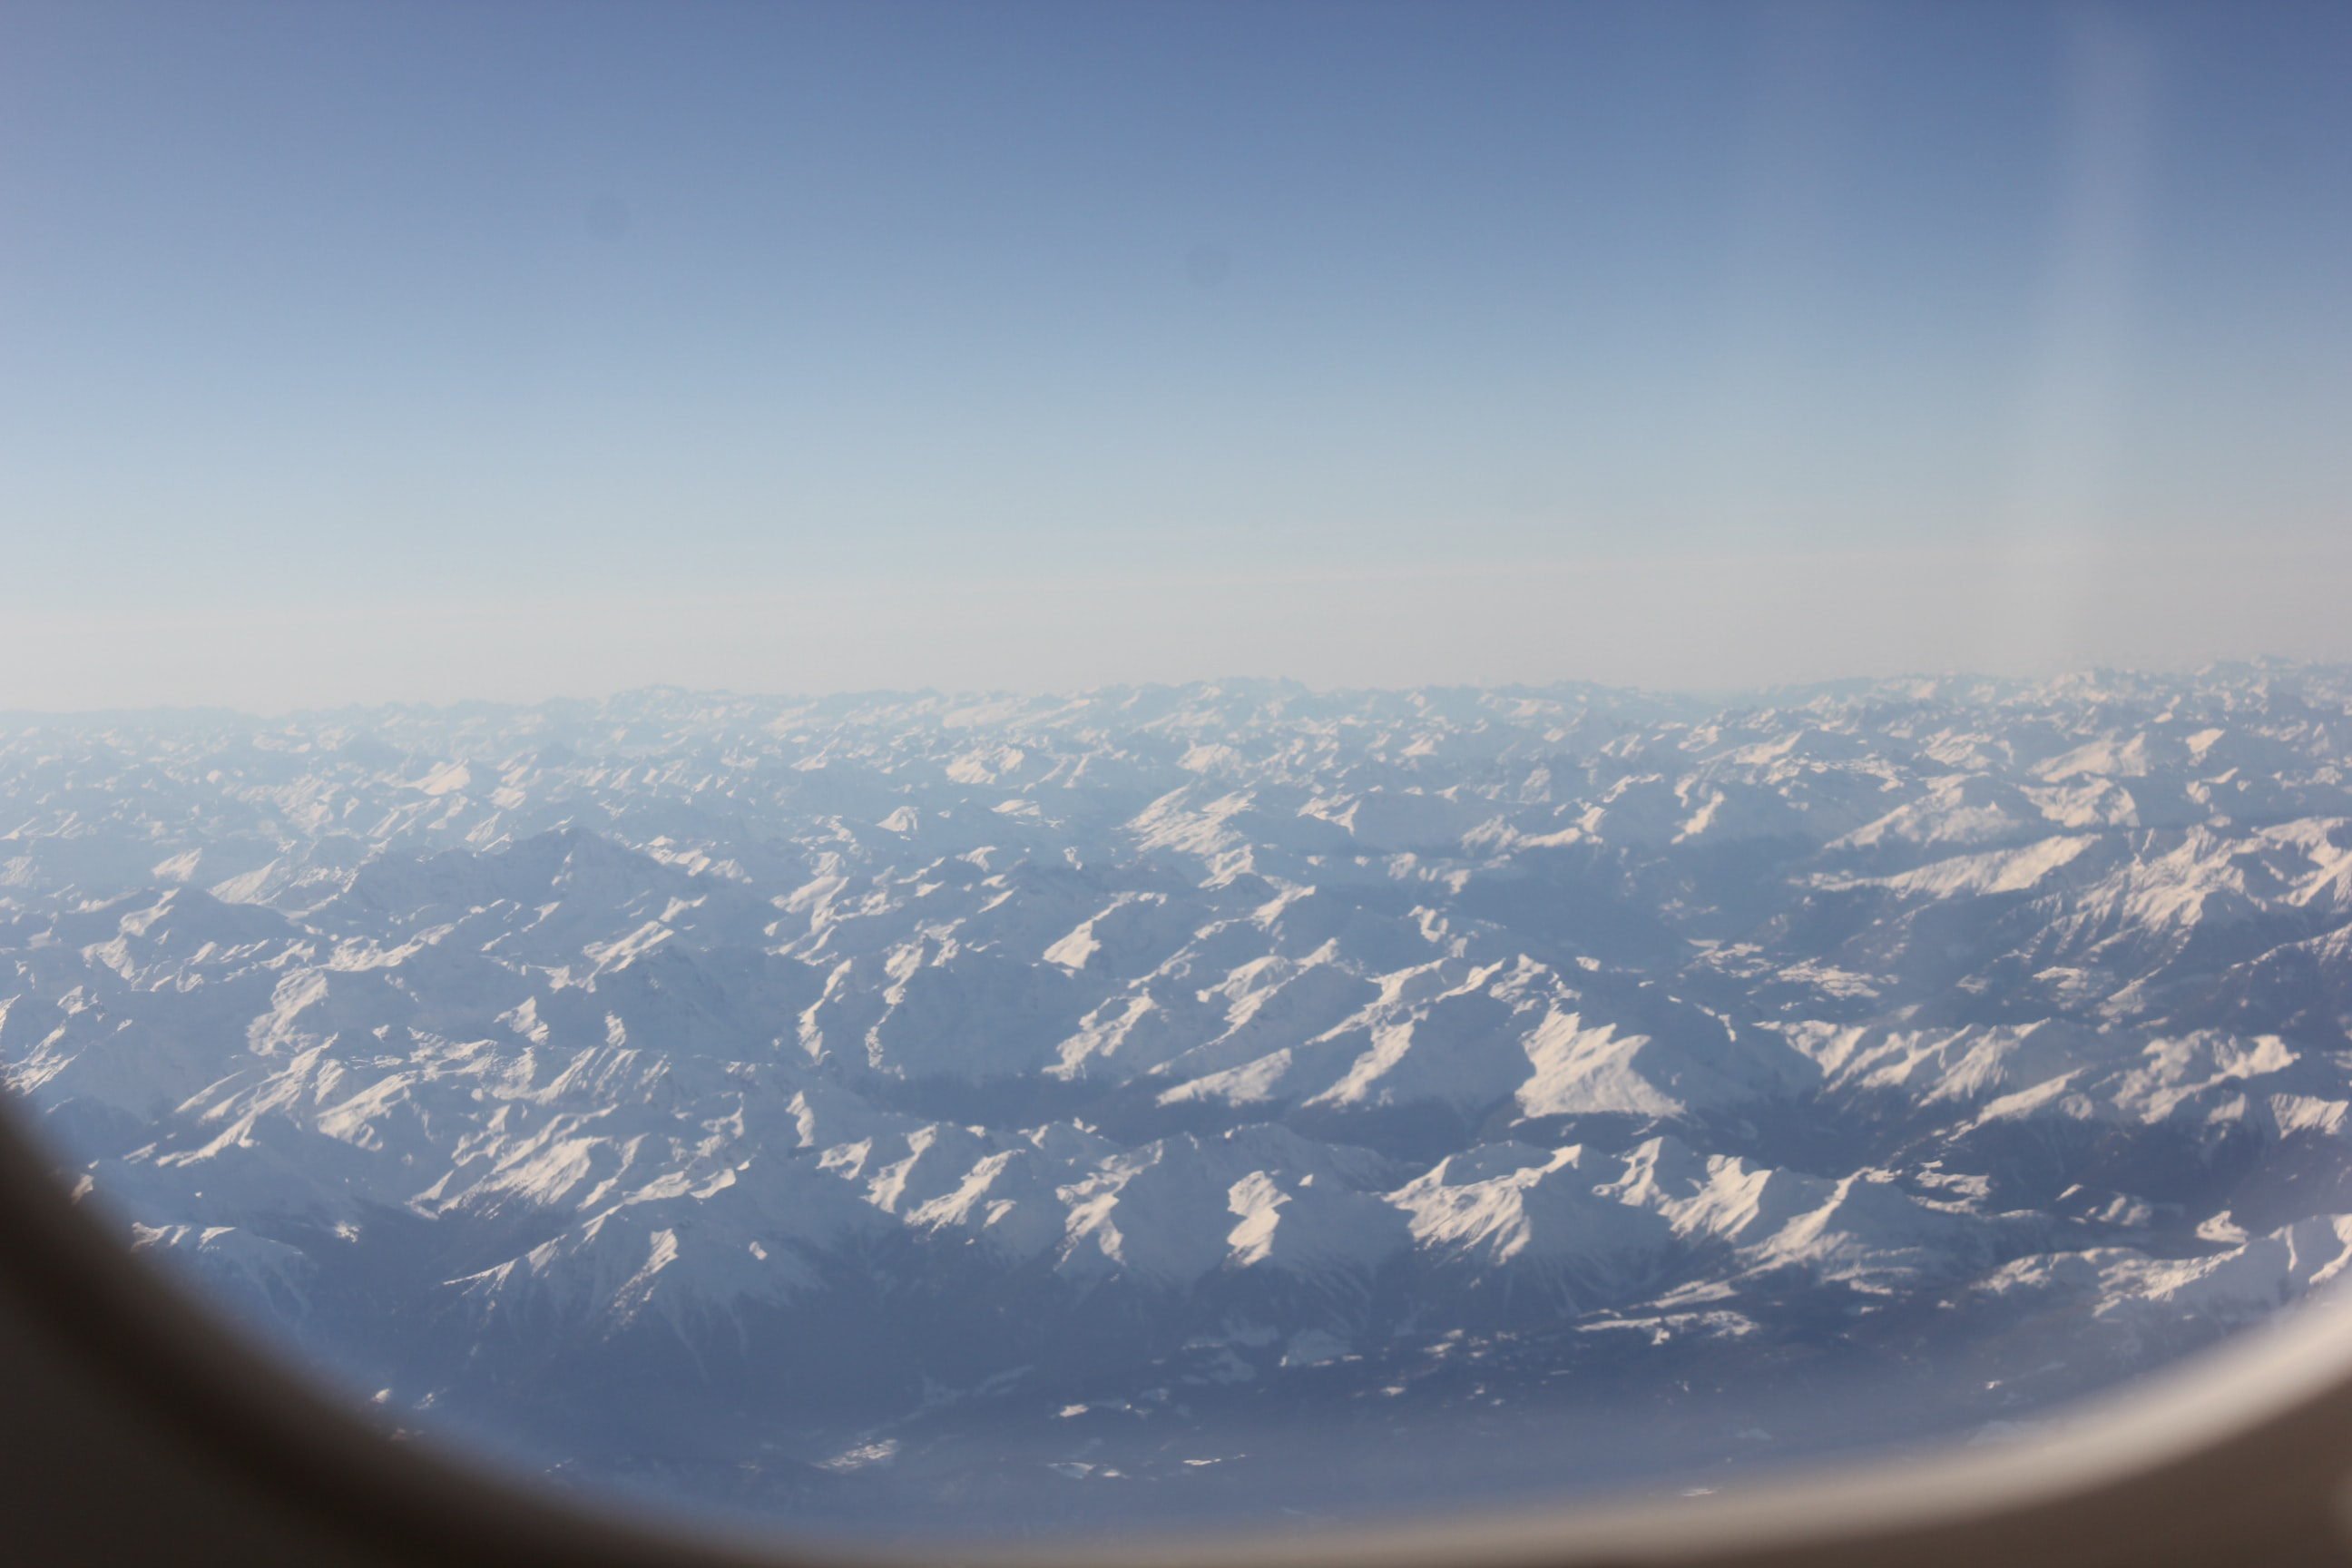 View from an airplane window on a vast mountainous area